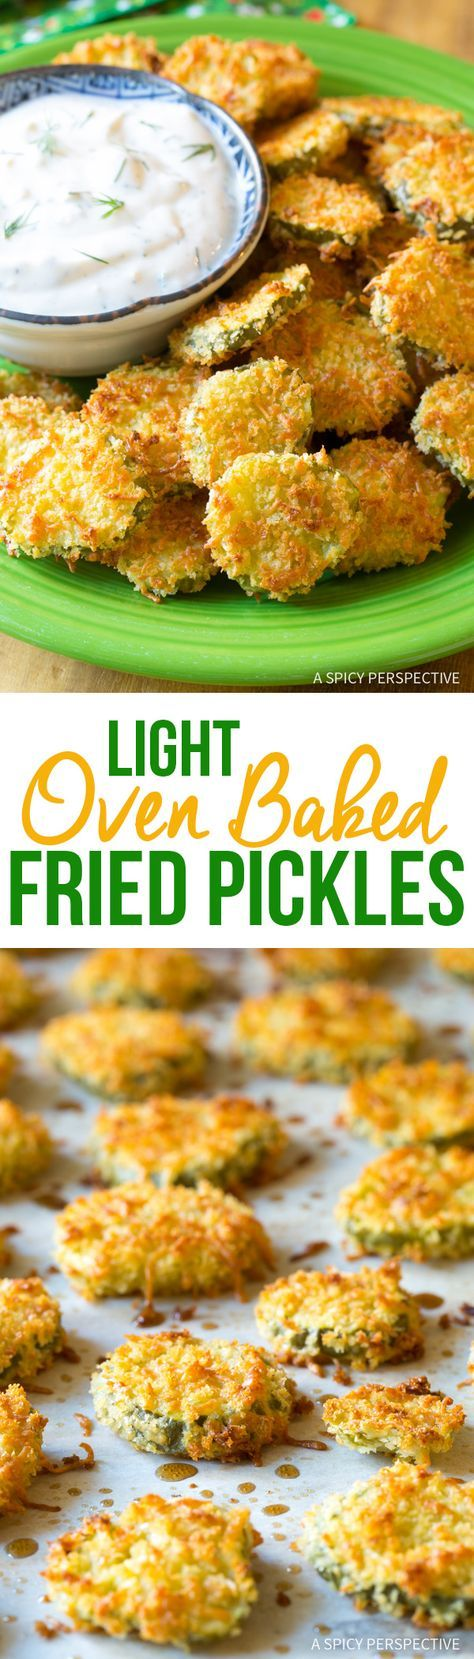 """Light Oven Baked """"Fried"""" Pickles with Garlic Sauce - trying with substituting whole wheat flour and almond milk..."""